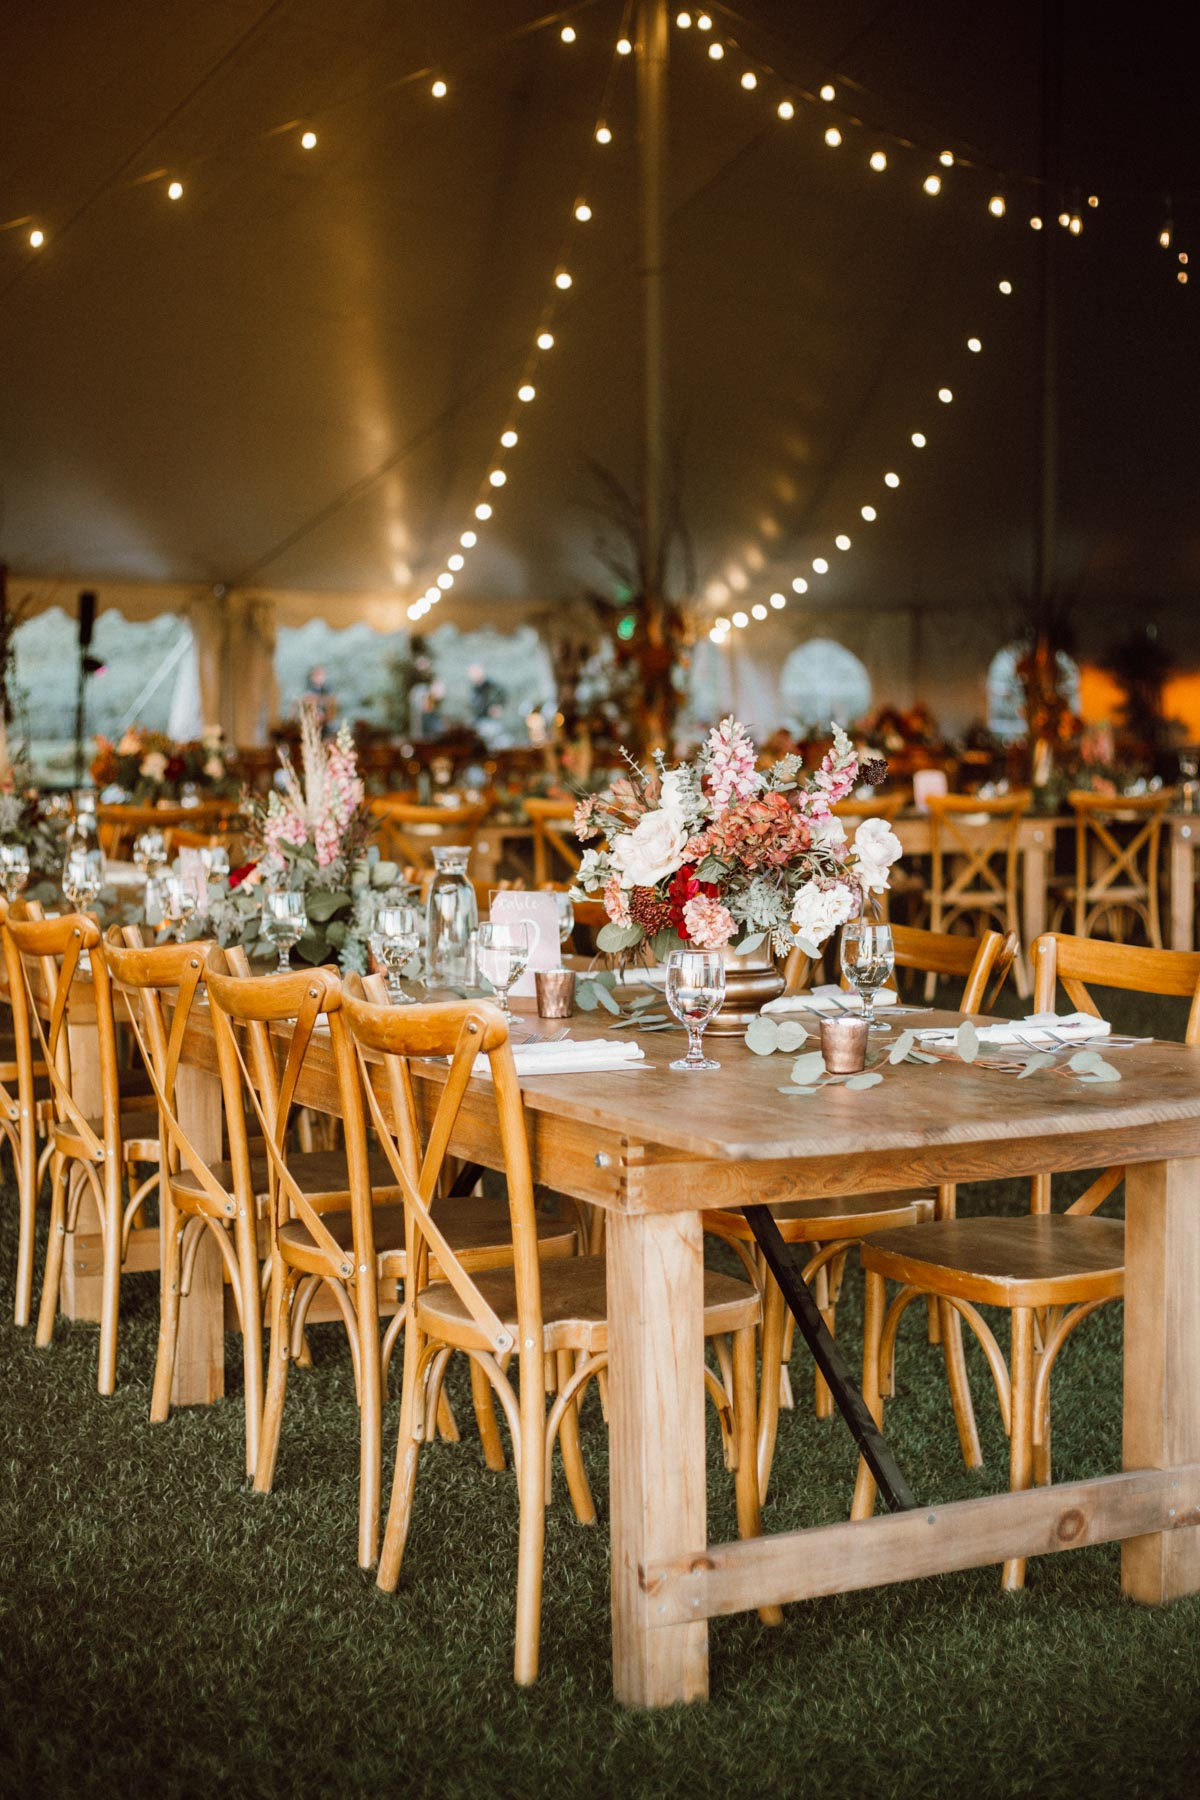 ethereal gardens wedding reception setup